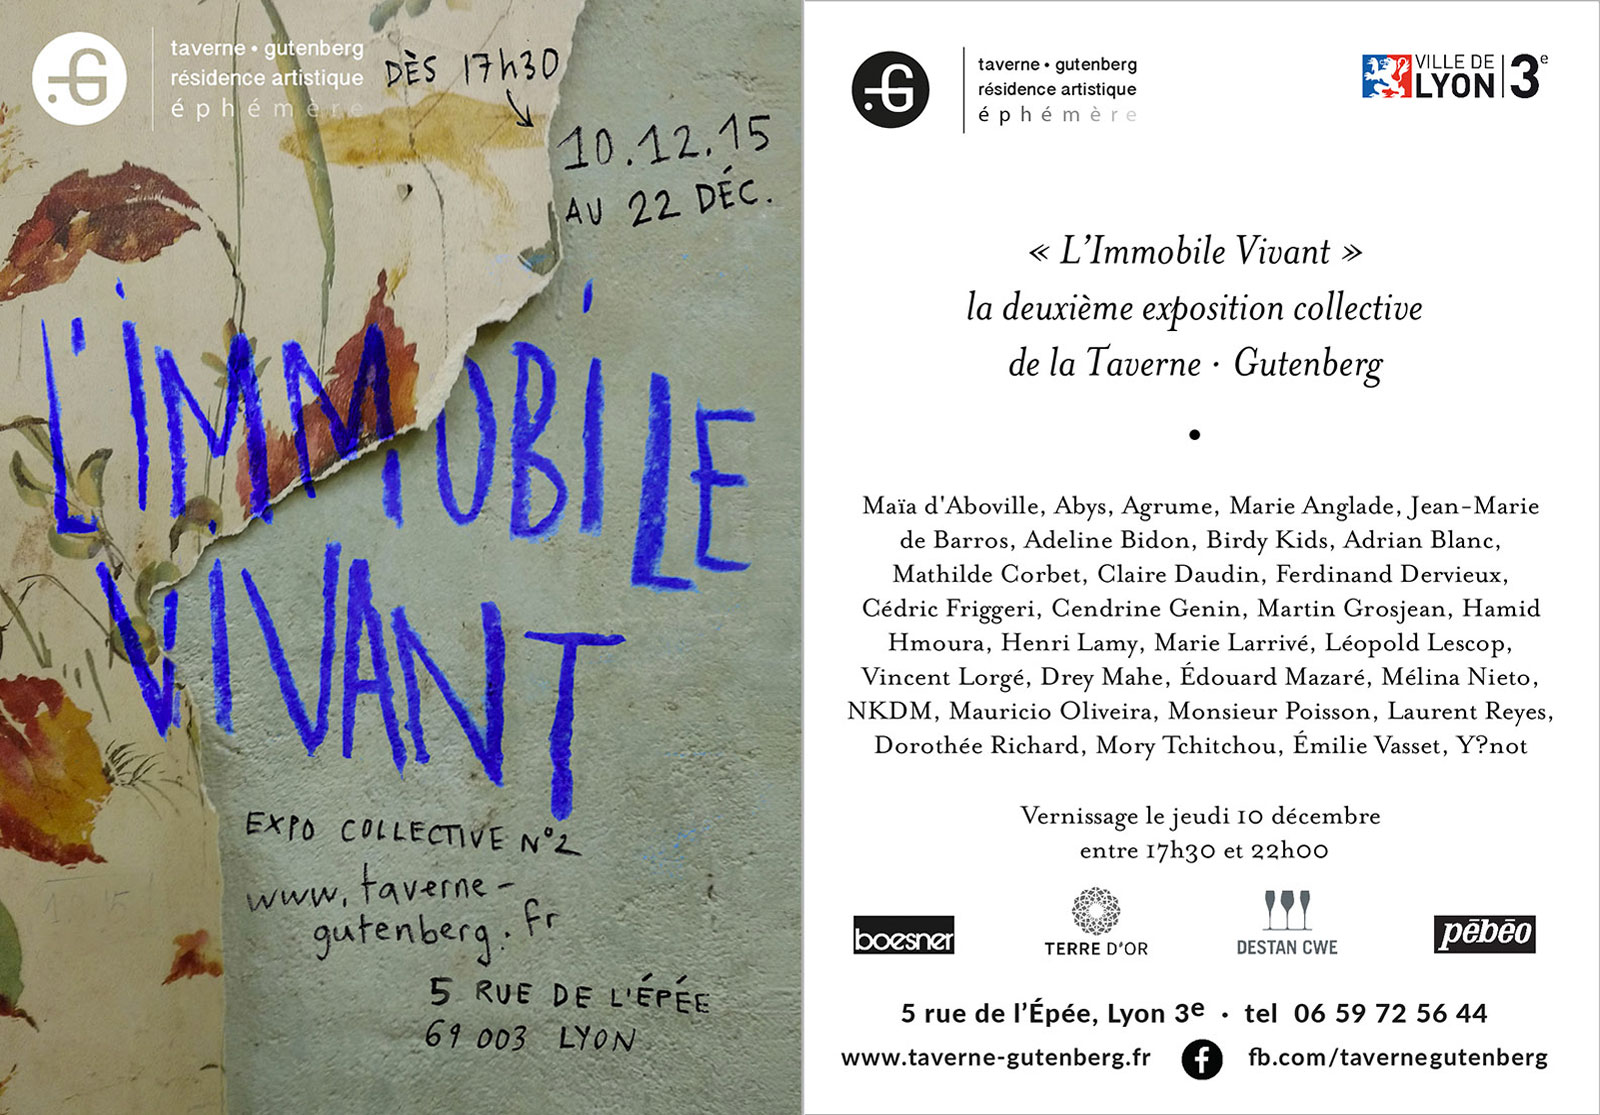 Affiche de l'exposition collective L'Immobile Vivant